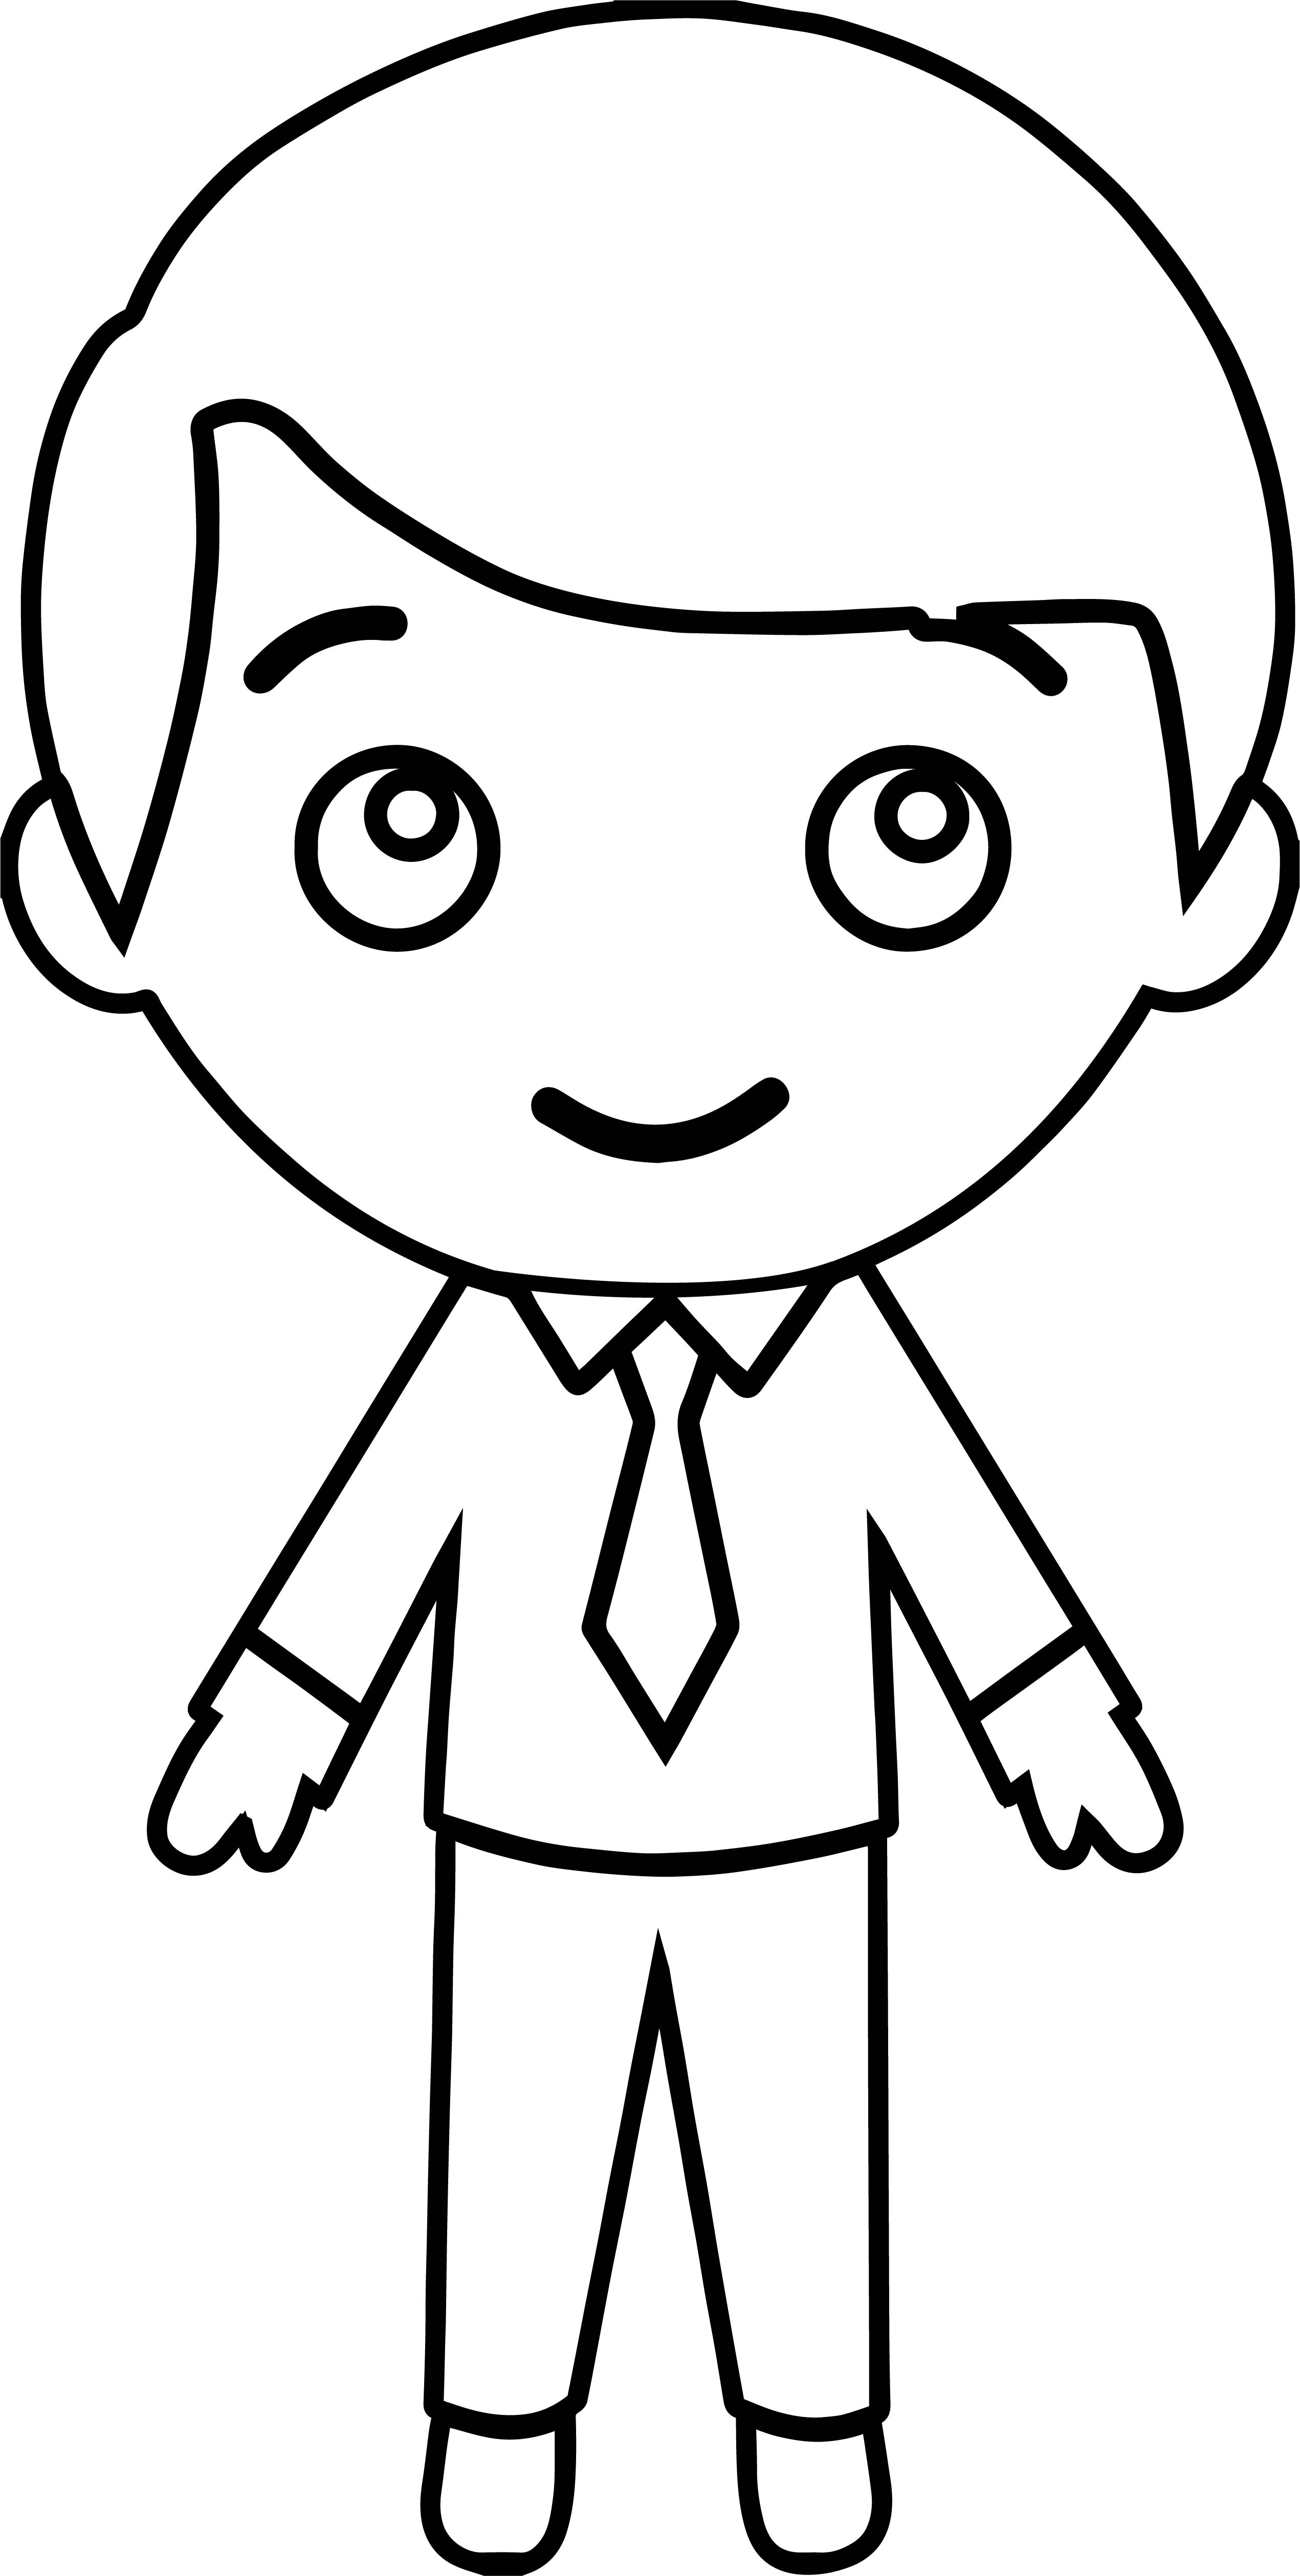 Cute Sweet Stick Figure Outline Student Boy Coloring Page